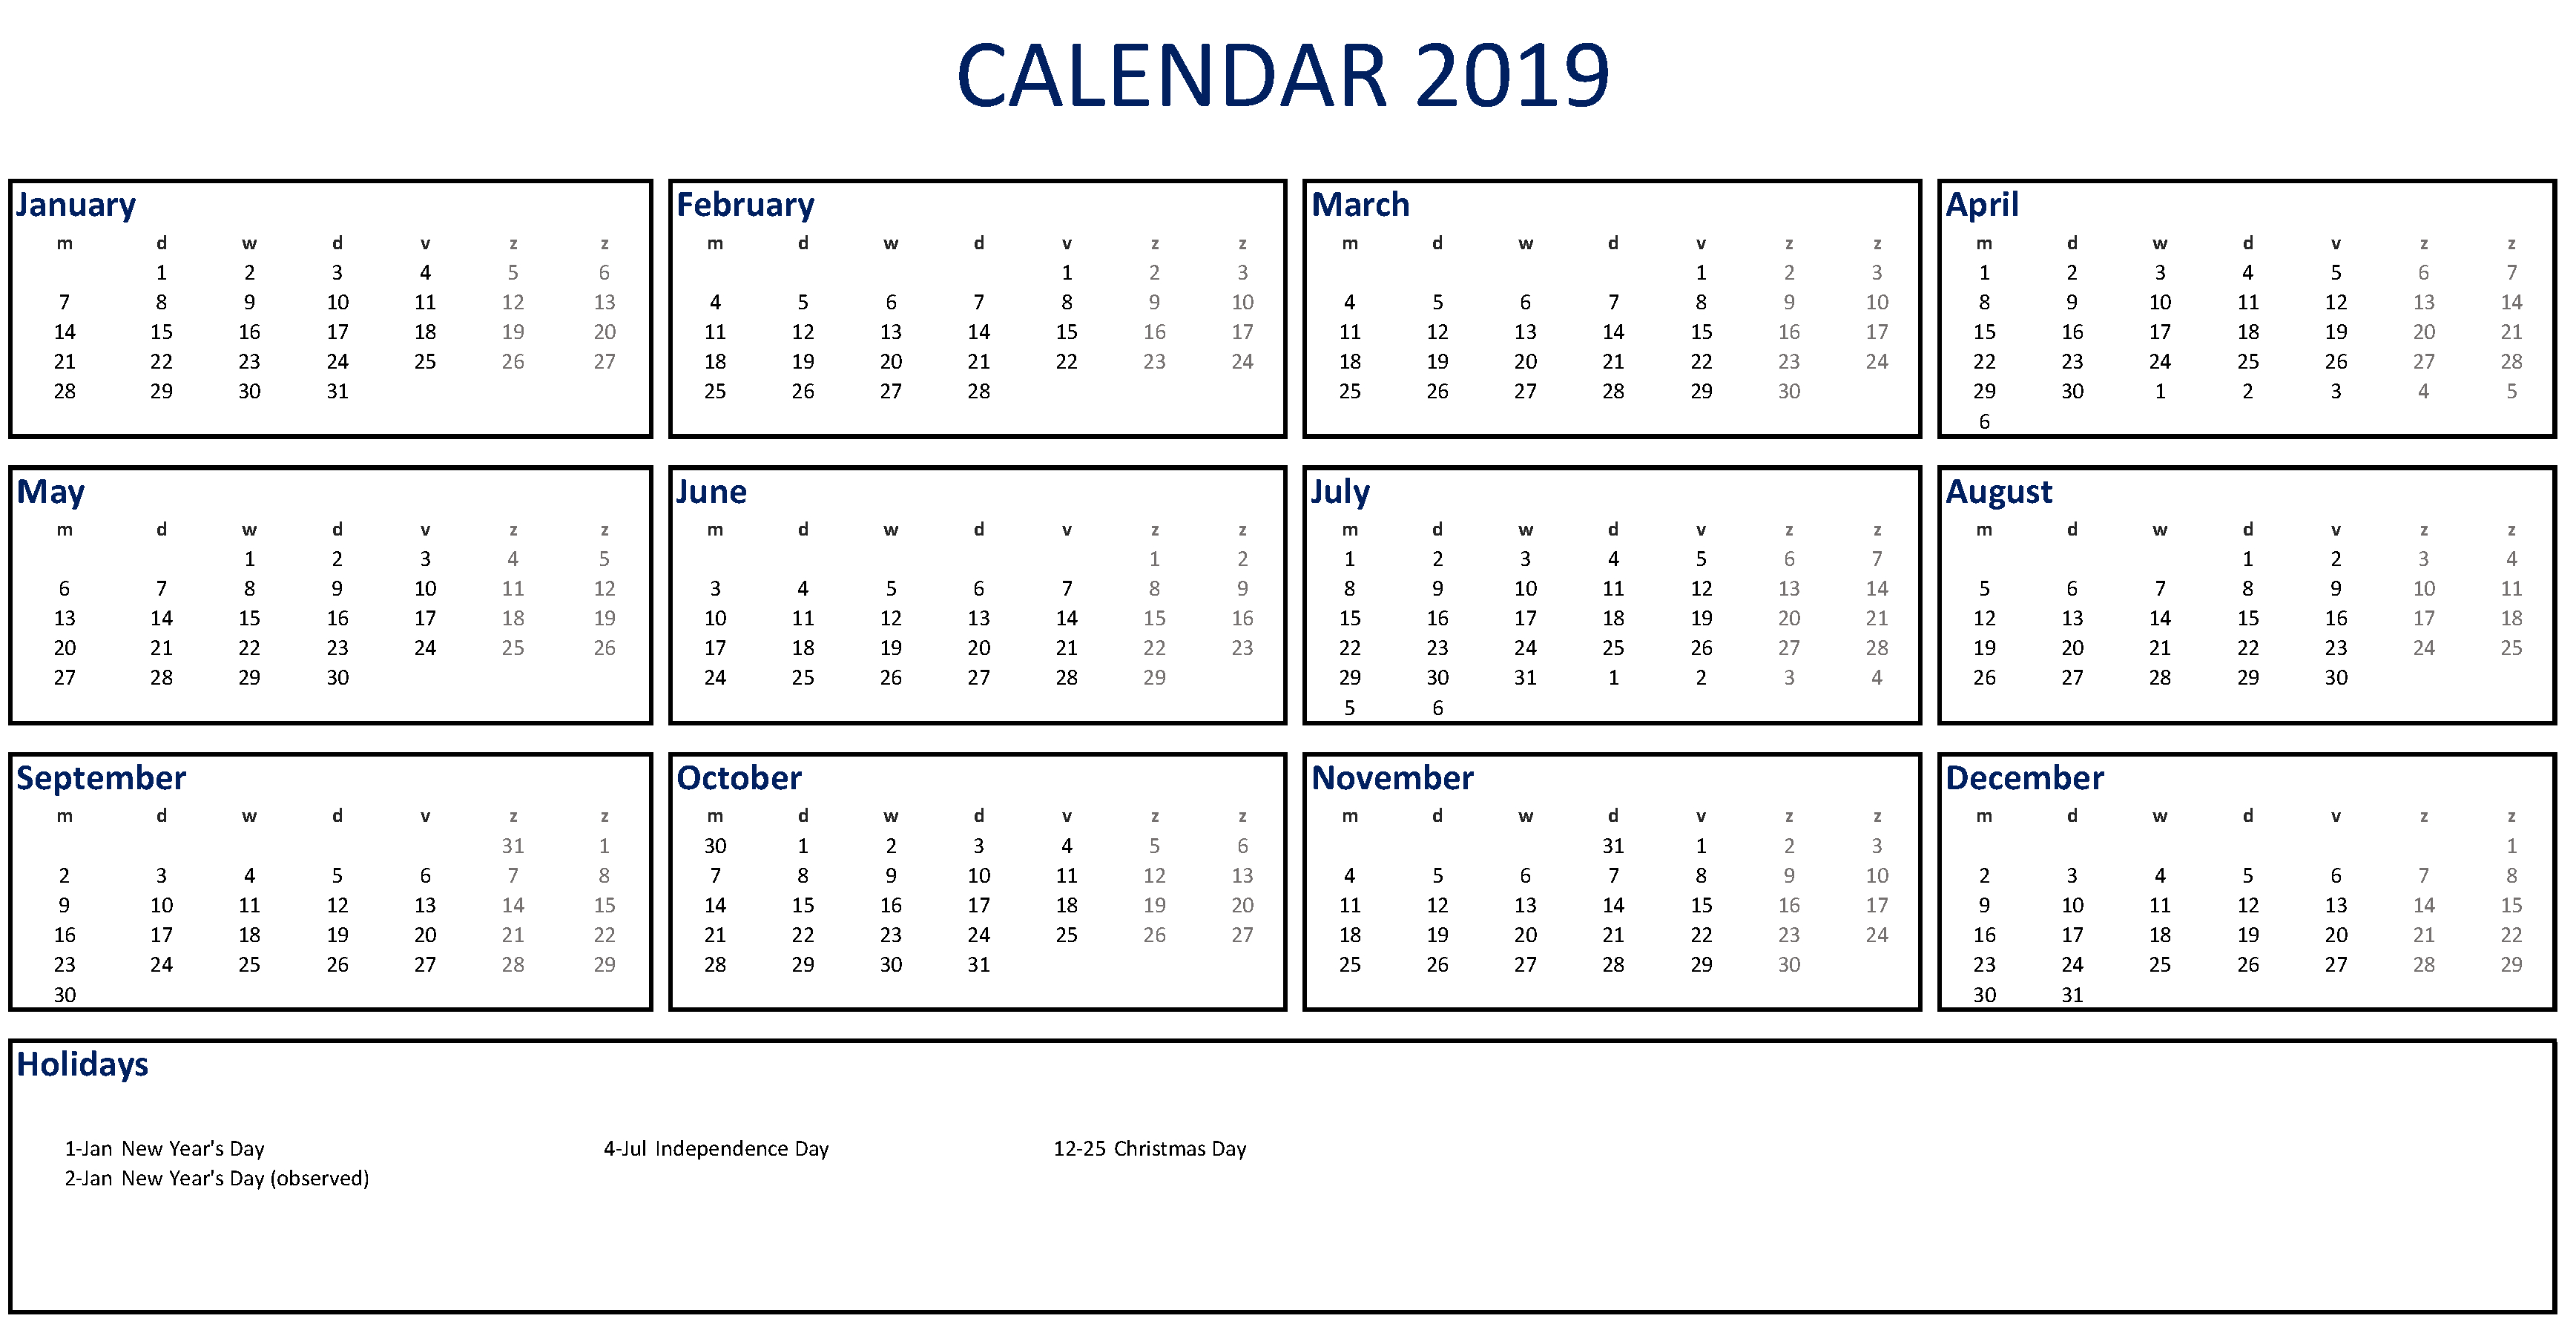 Calendar 2019 Template | Templates At Allbusinesstemplates Printable Hr Annual Calendar For Time Off 2019